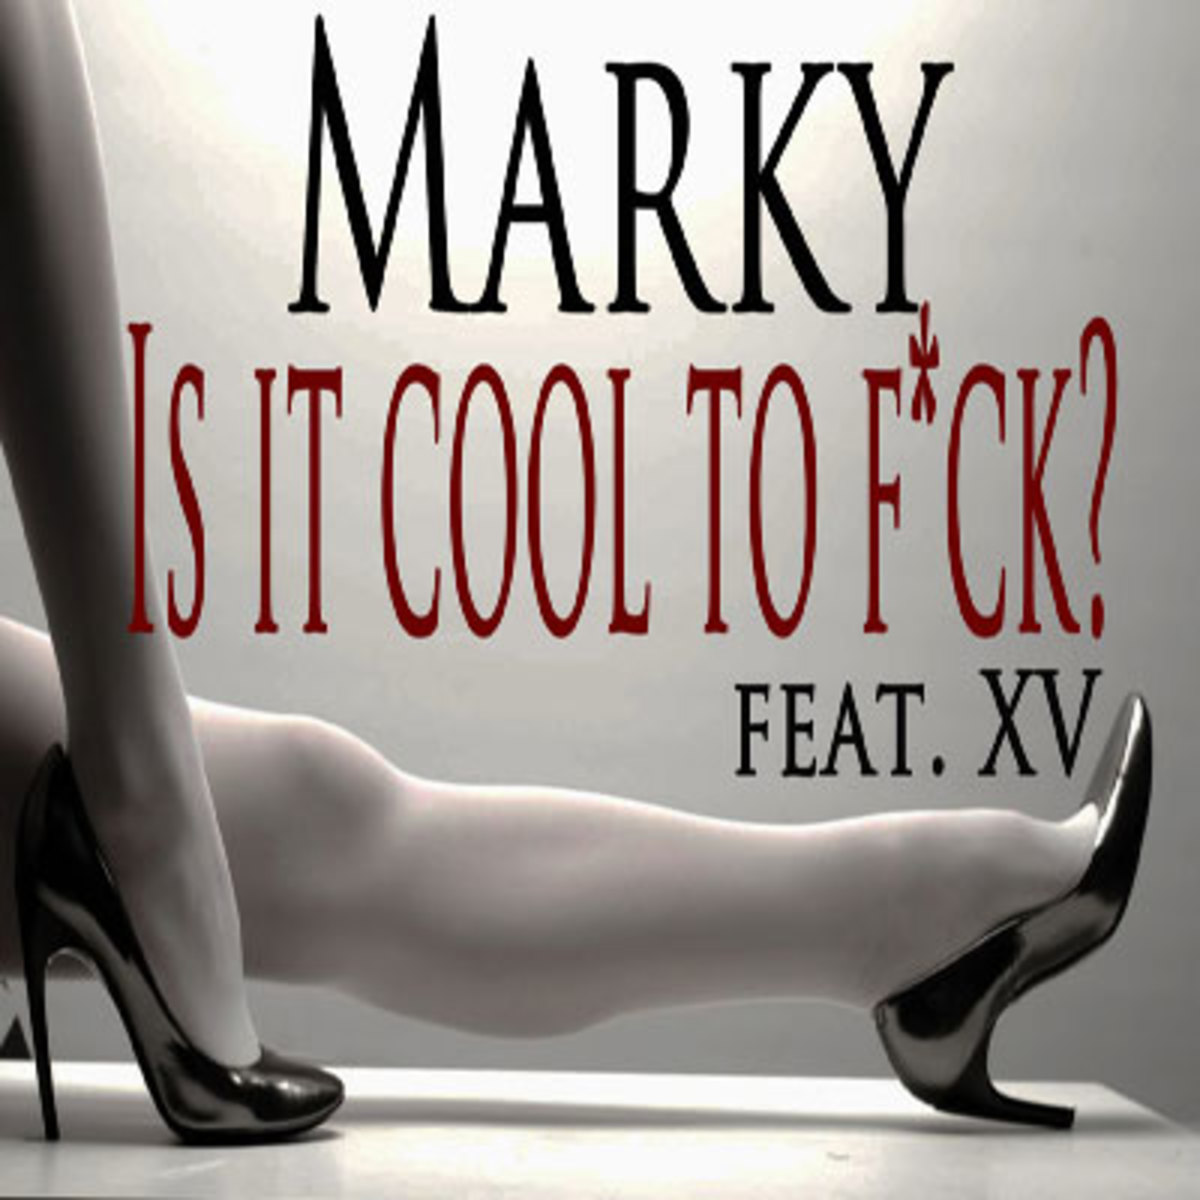 marky-isitcooltof.jpg